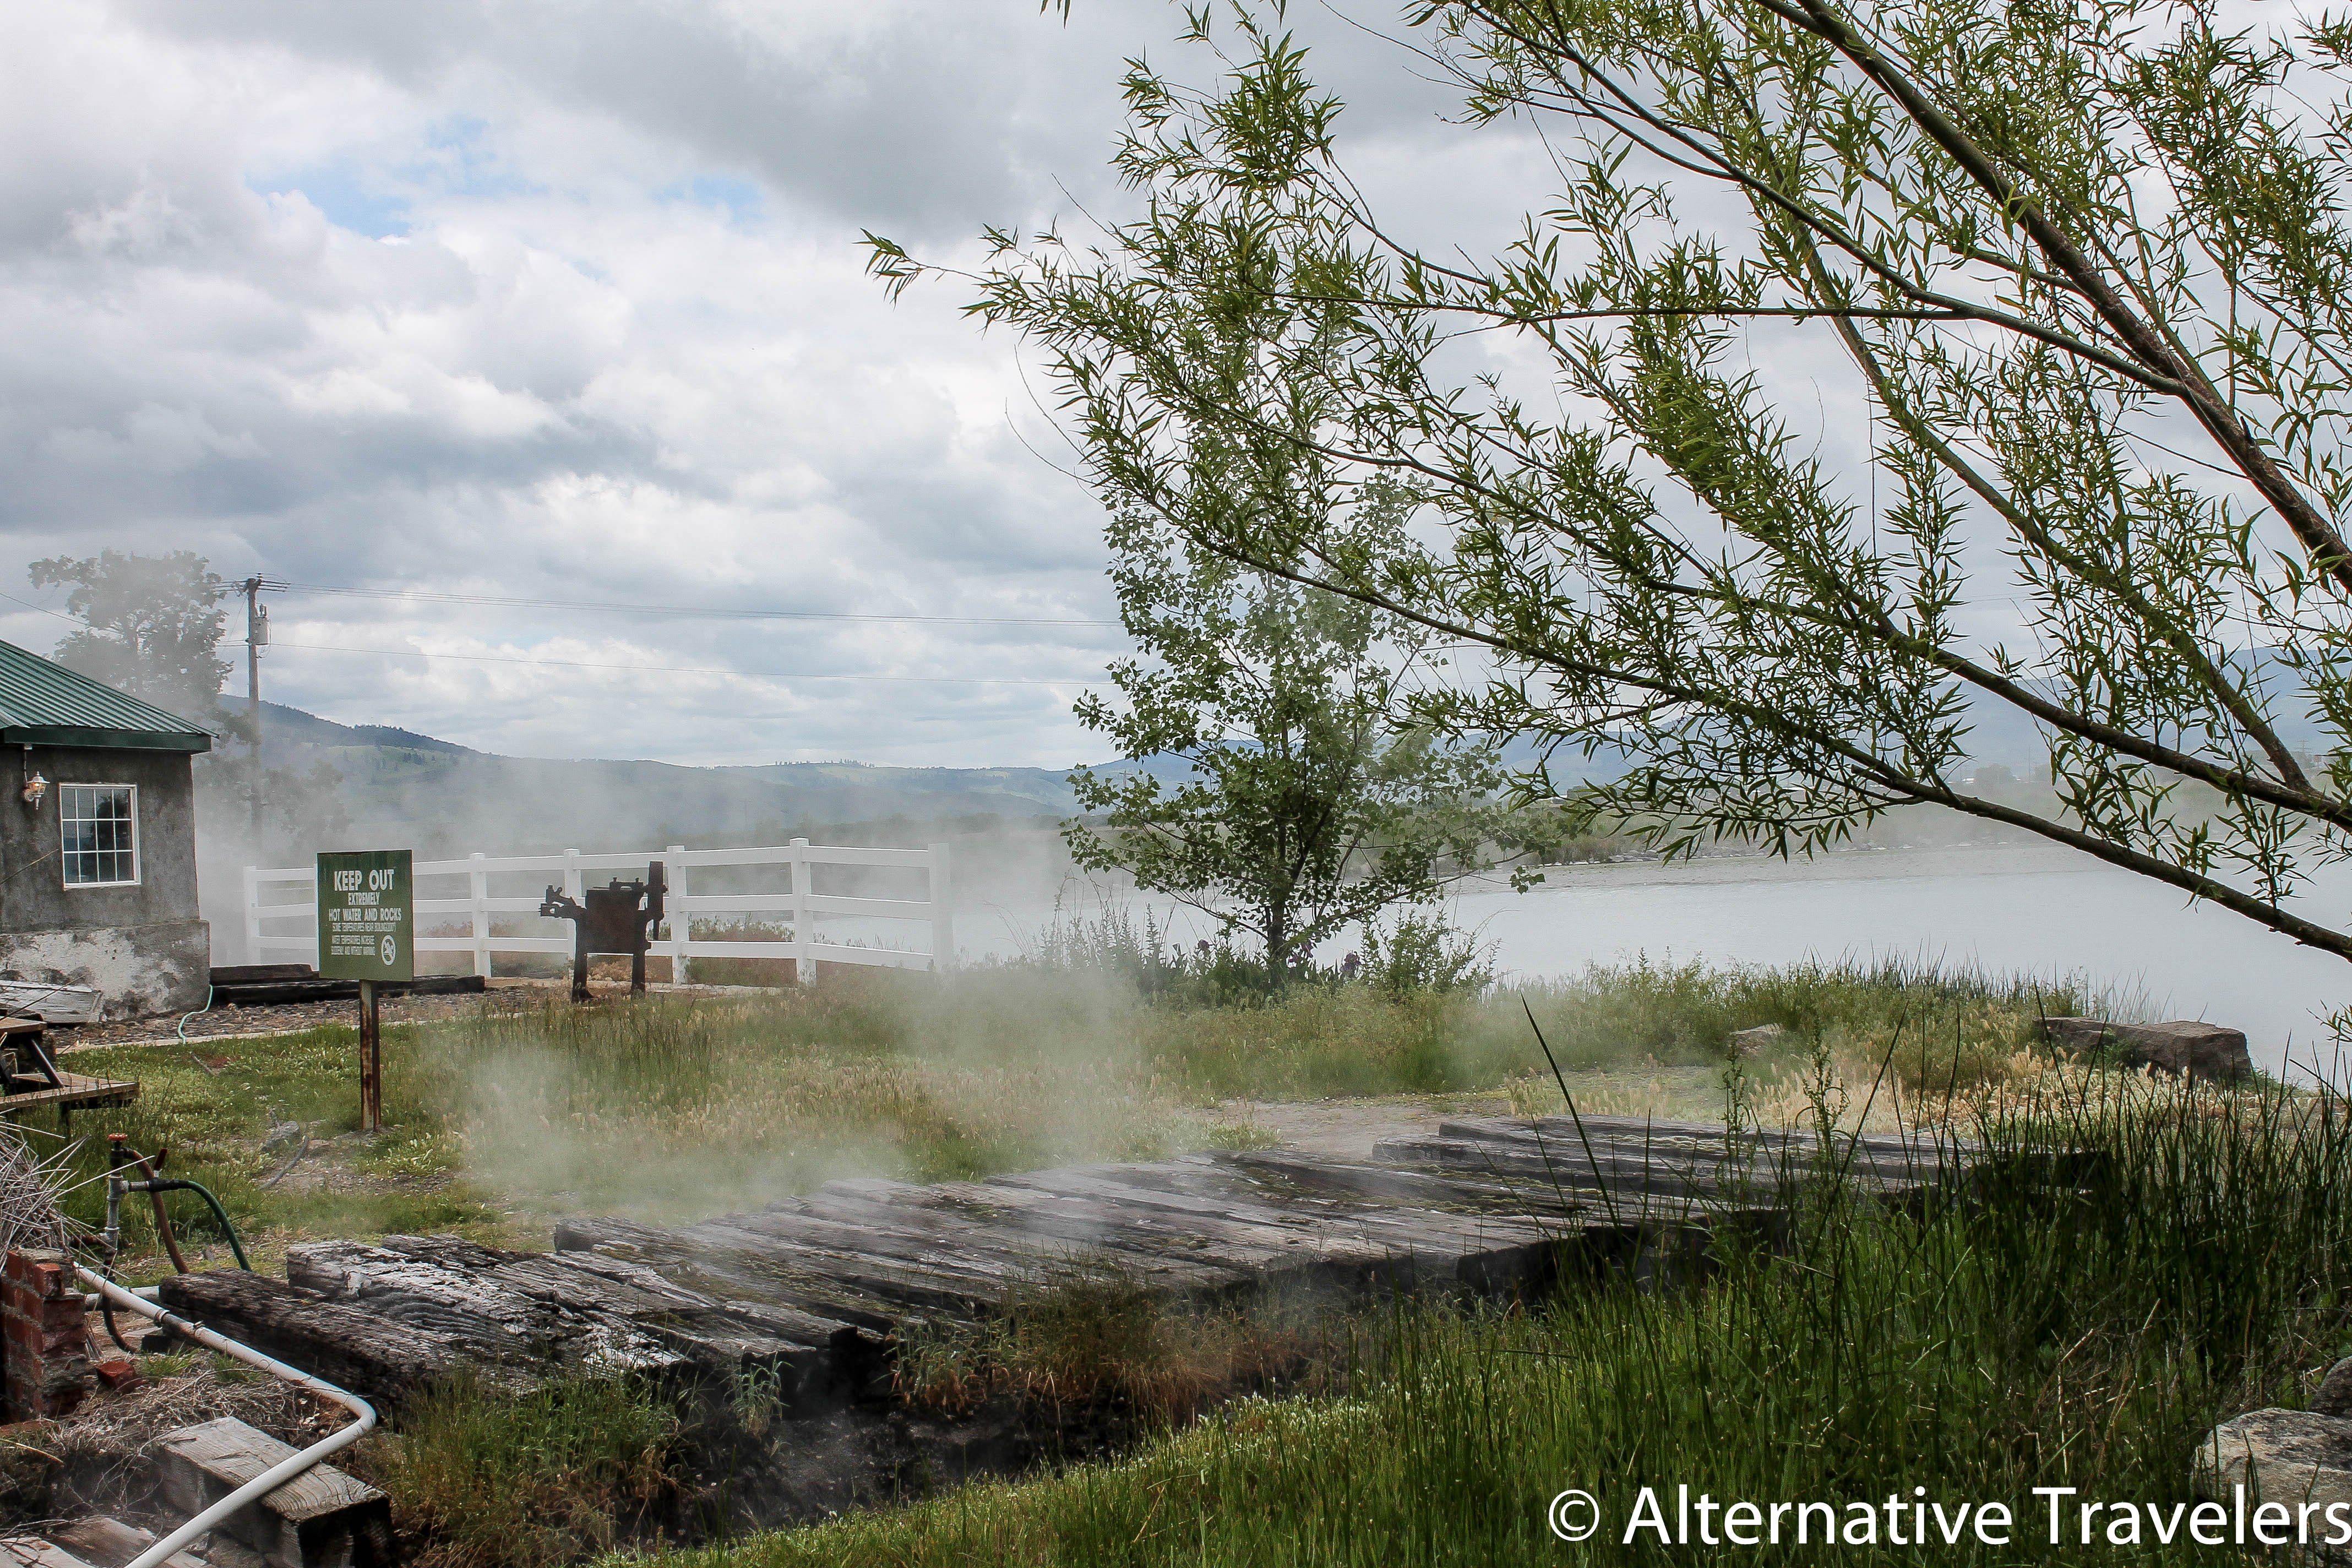 Mist rising off the hot springs.